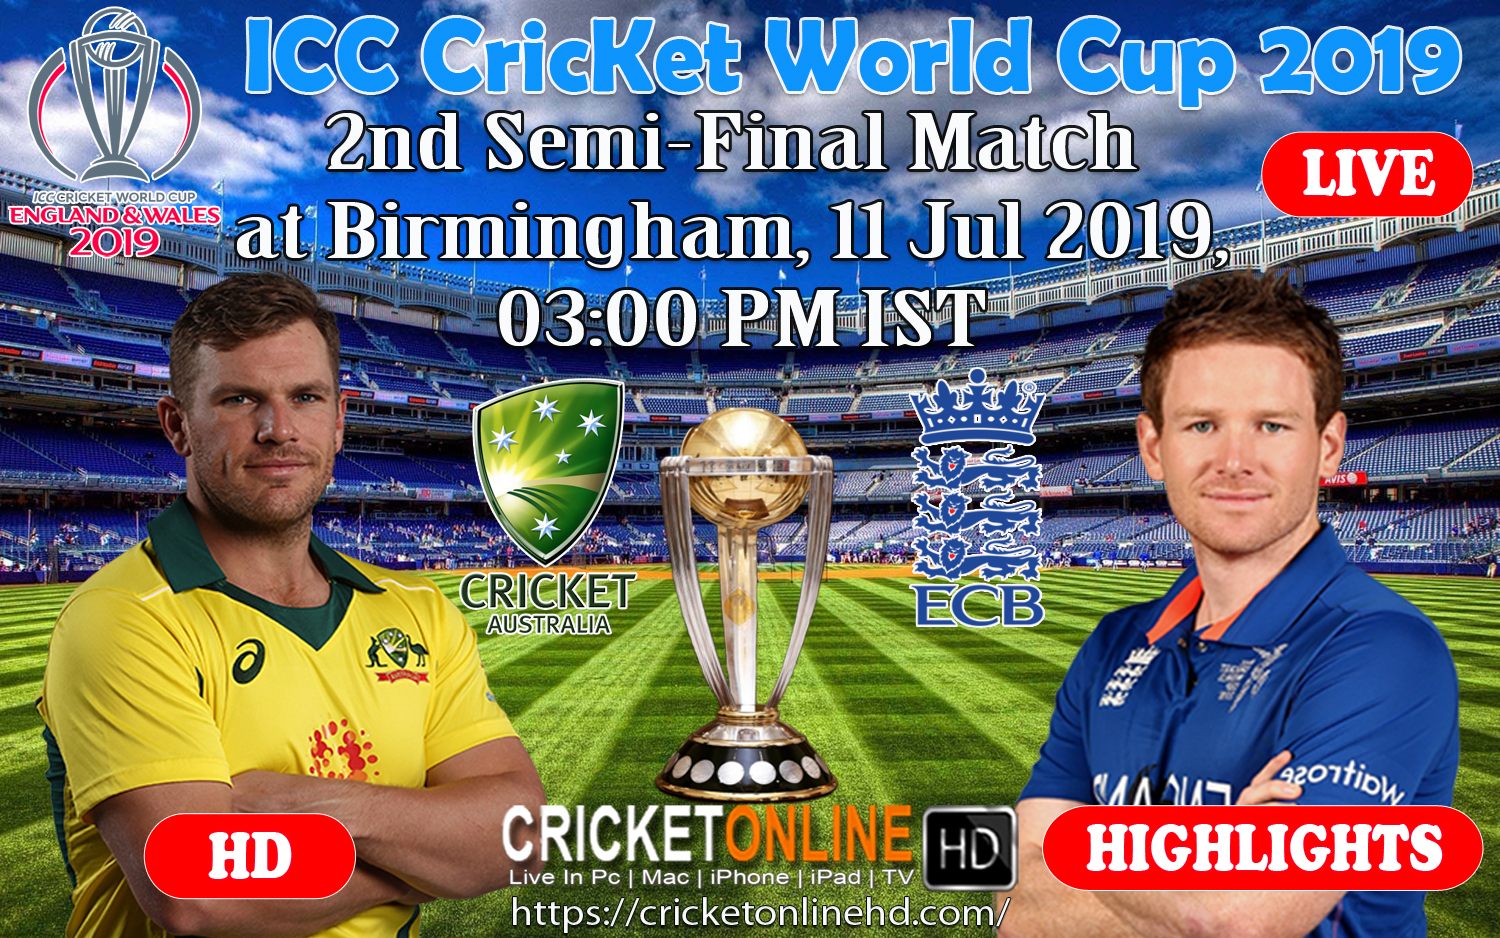 Australia Vs England 2nd Semi-Final, ICC Cricket World Cup 2019 Live Streaming HD At Birmingham, July 11 2019